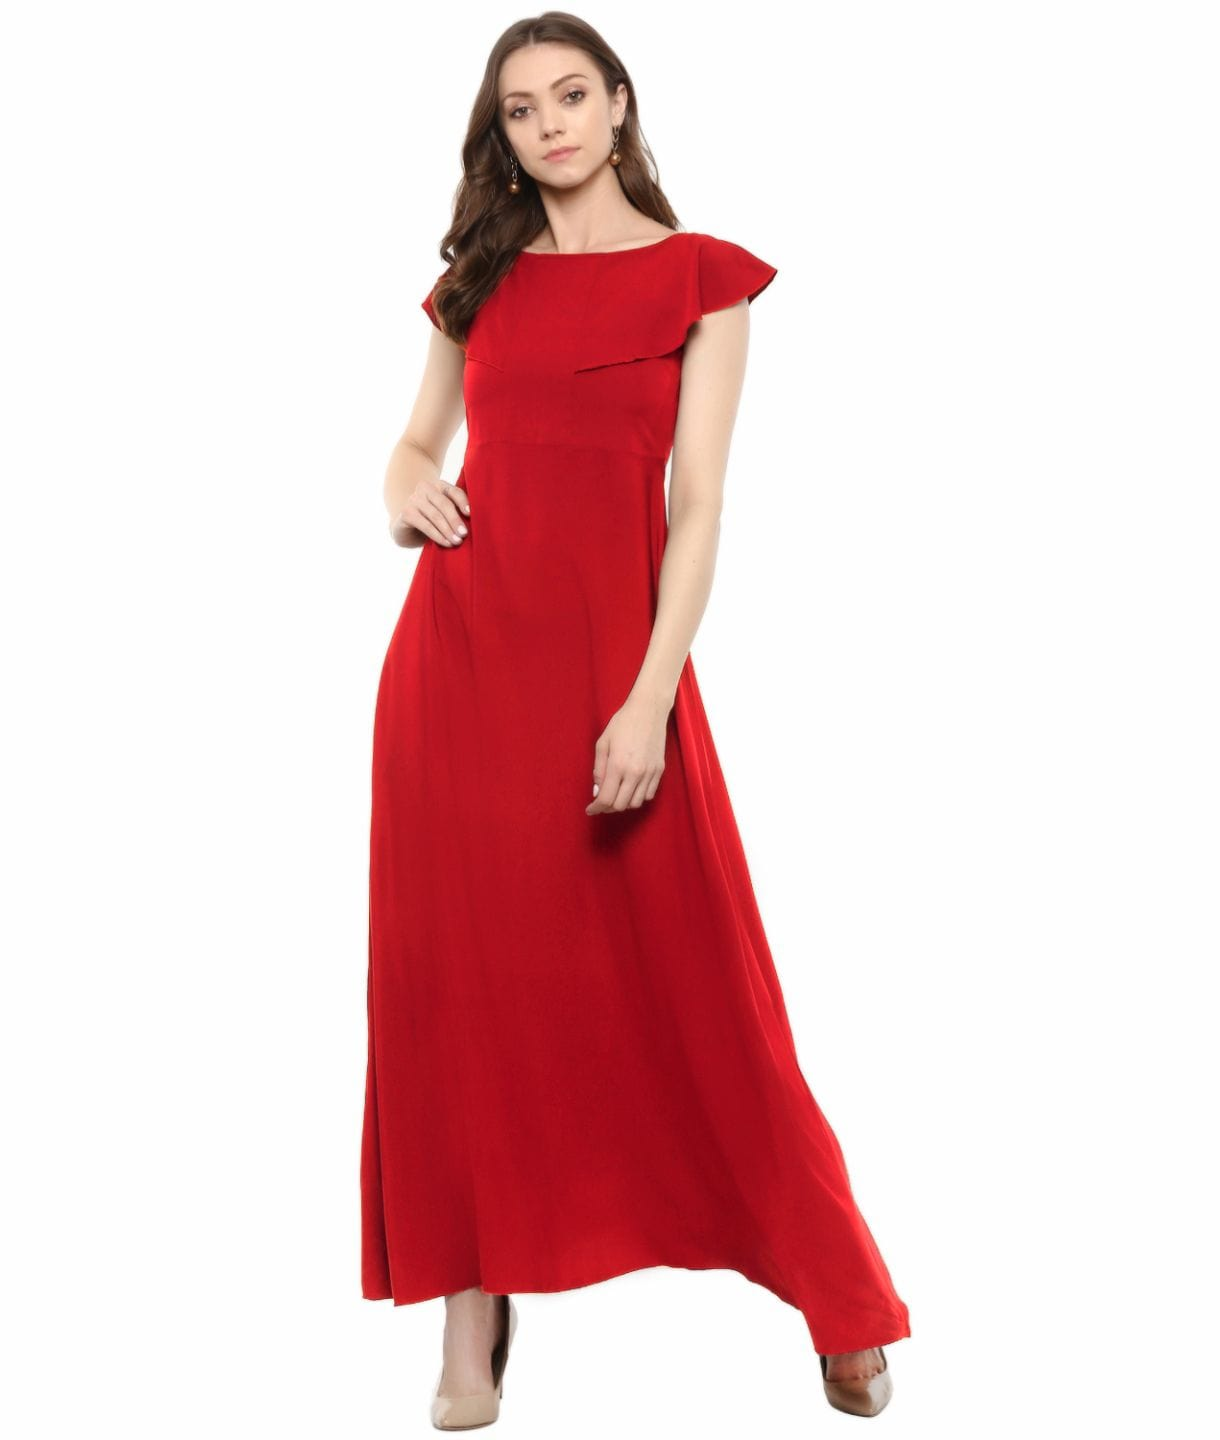 Red Solid Crepe Ruffled Maternity Dress/Gown